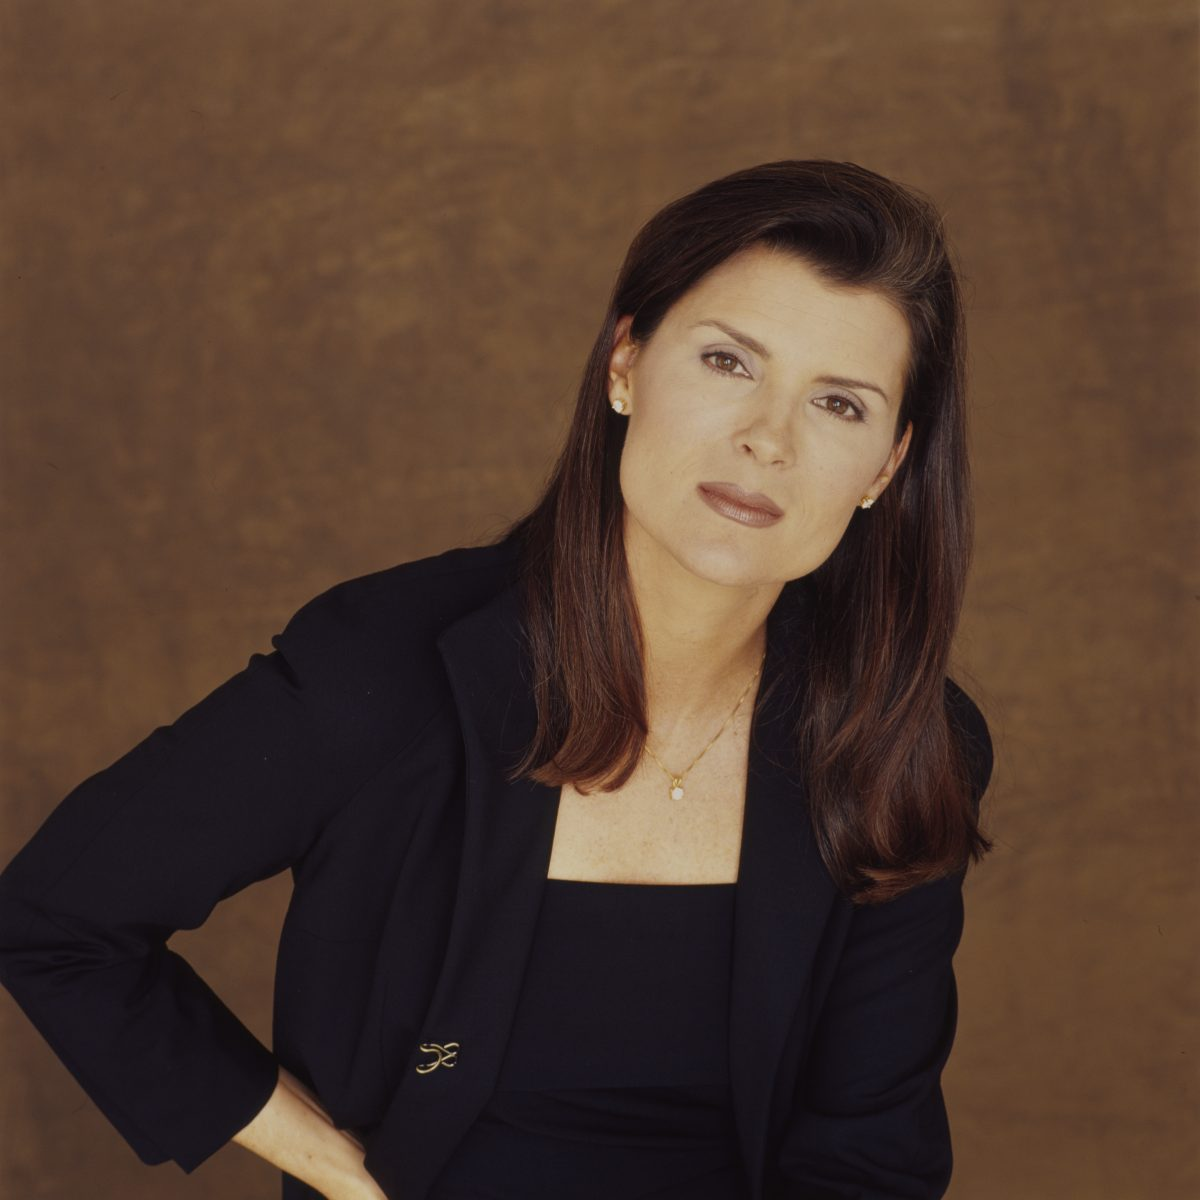 Soap opera actress Kimberlin Brown in a promotional photoshoot for 'All My Children.'